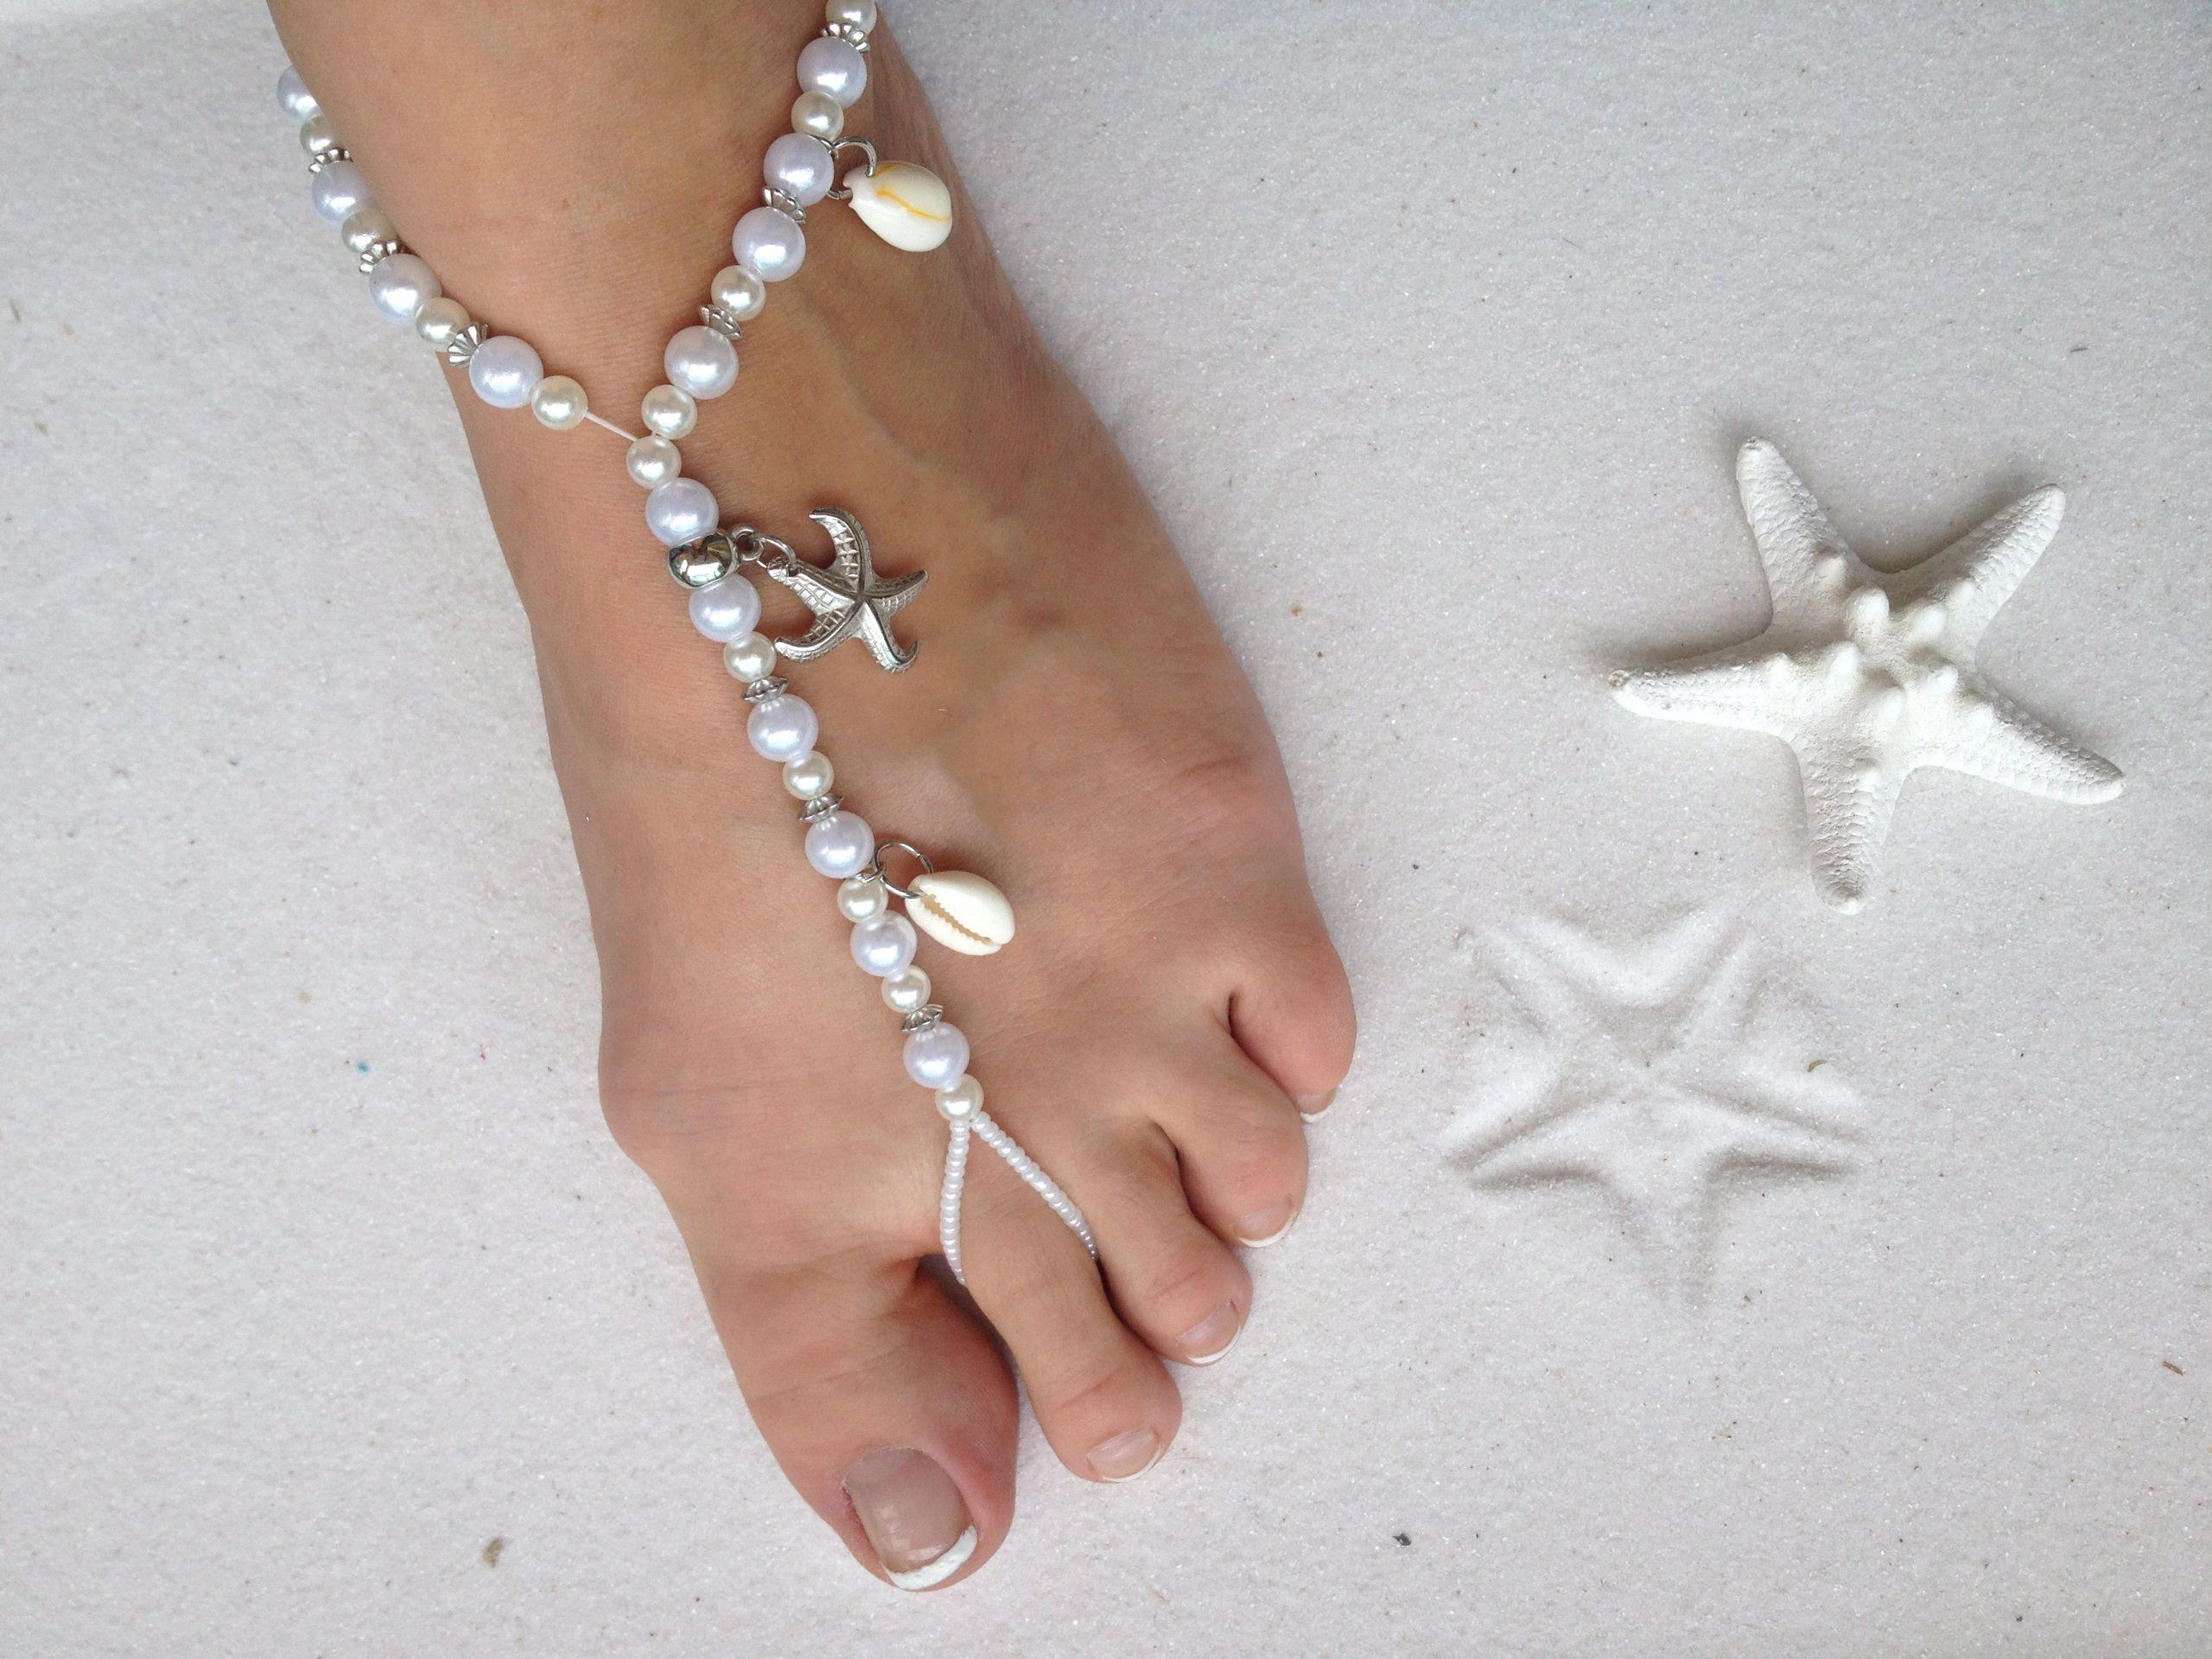 il products mint foot wedding mqju anklet sandals beaded green jewelry your fullxfull beach original destination for barefoot